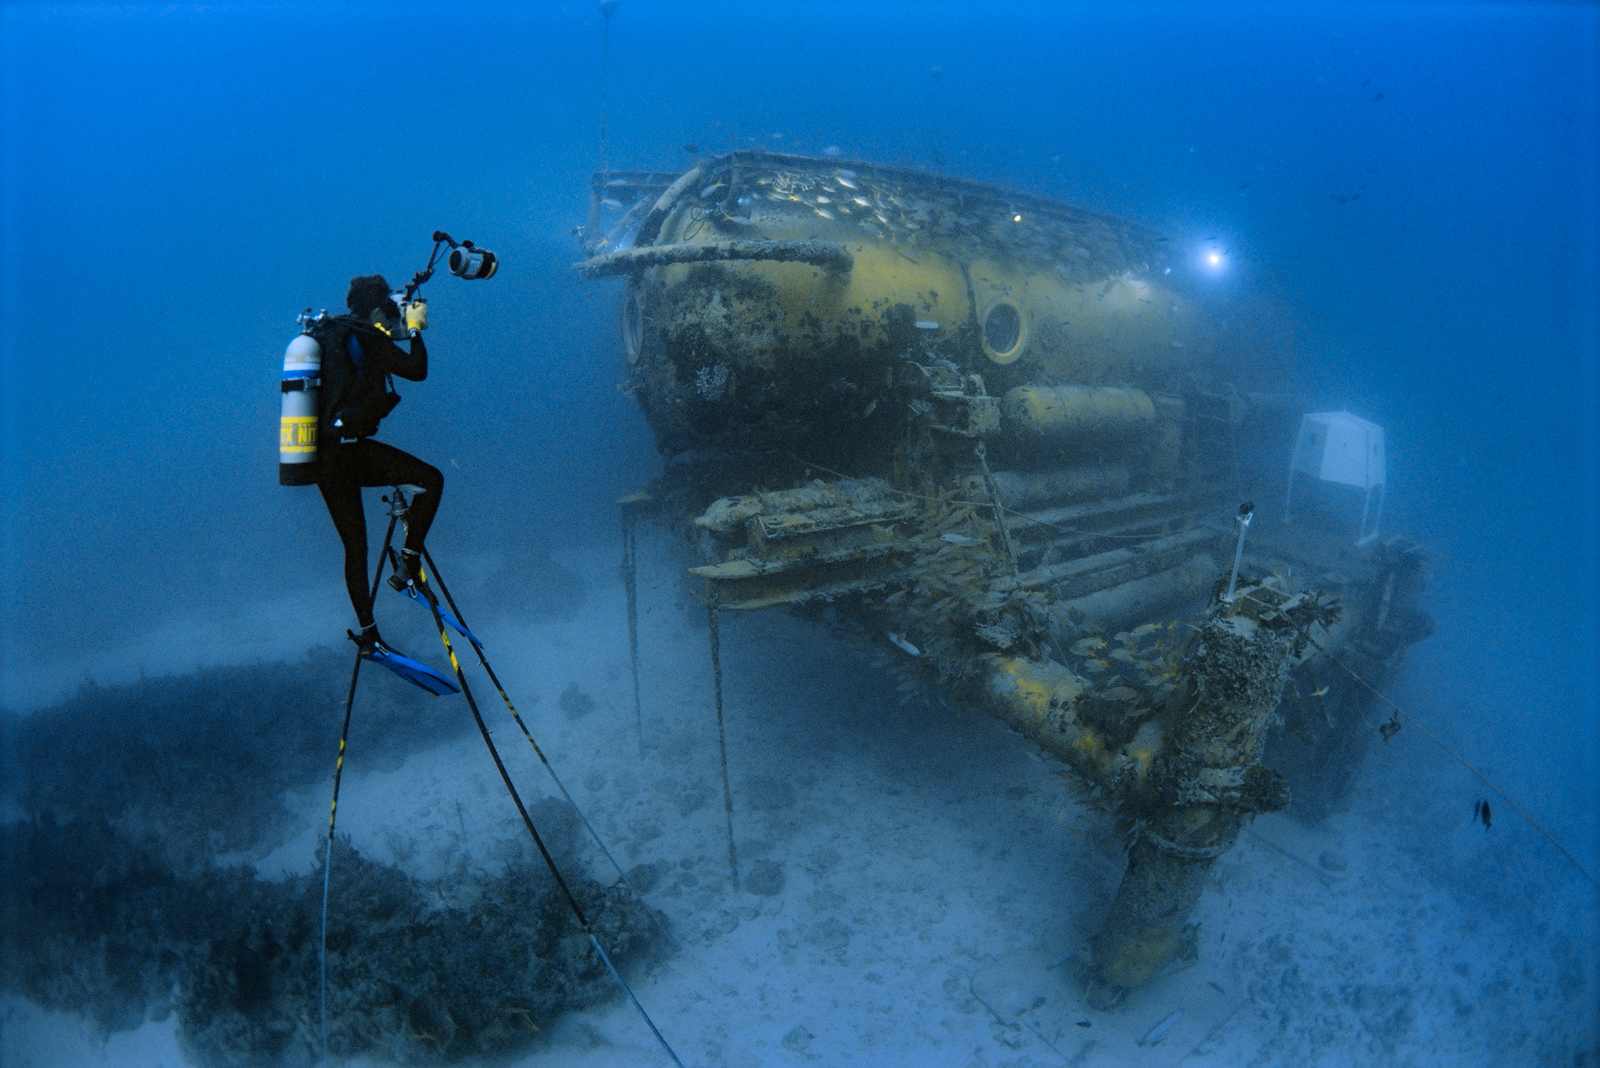 Brian Skerry sits on a 20 foot high underwater tripod to photograph the Aquarius Habitat off Florida.<div class='credit'><strong>Credit:</strong> Brian Skerry sits on a 20 foot high underwater tripod to photograph the Aquarius Habitat off Florida.</div>